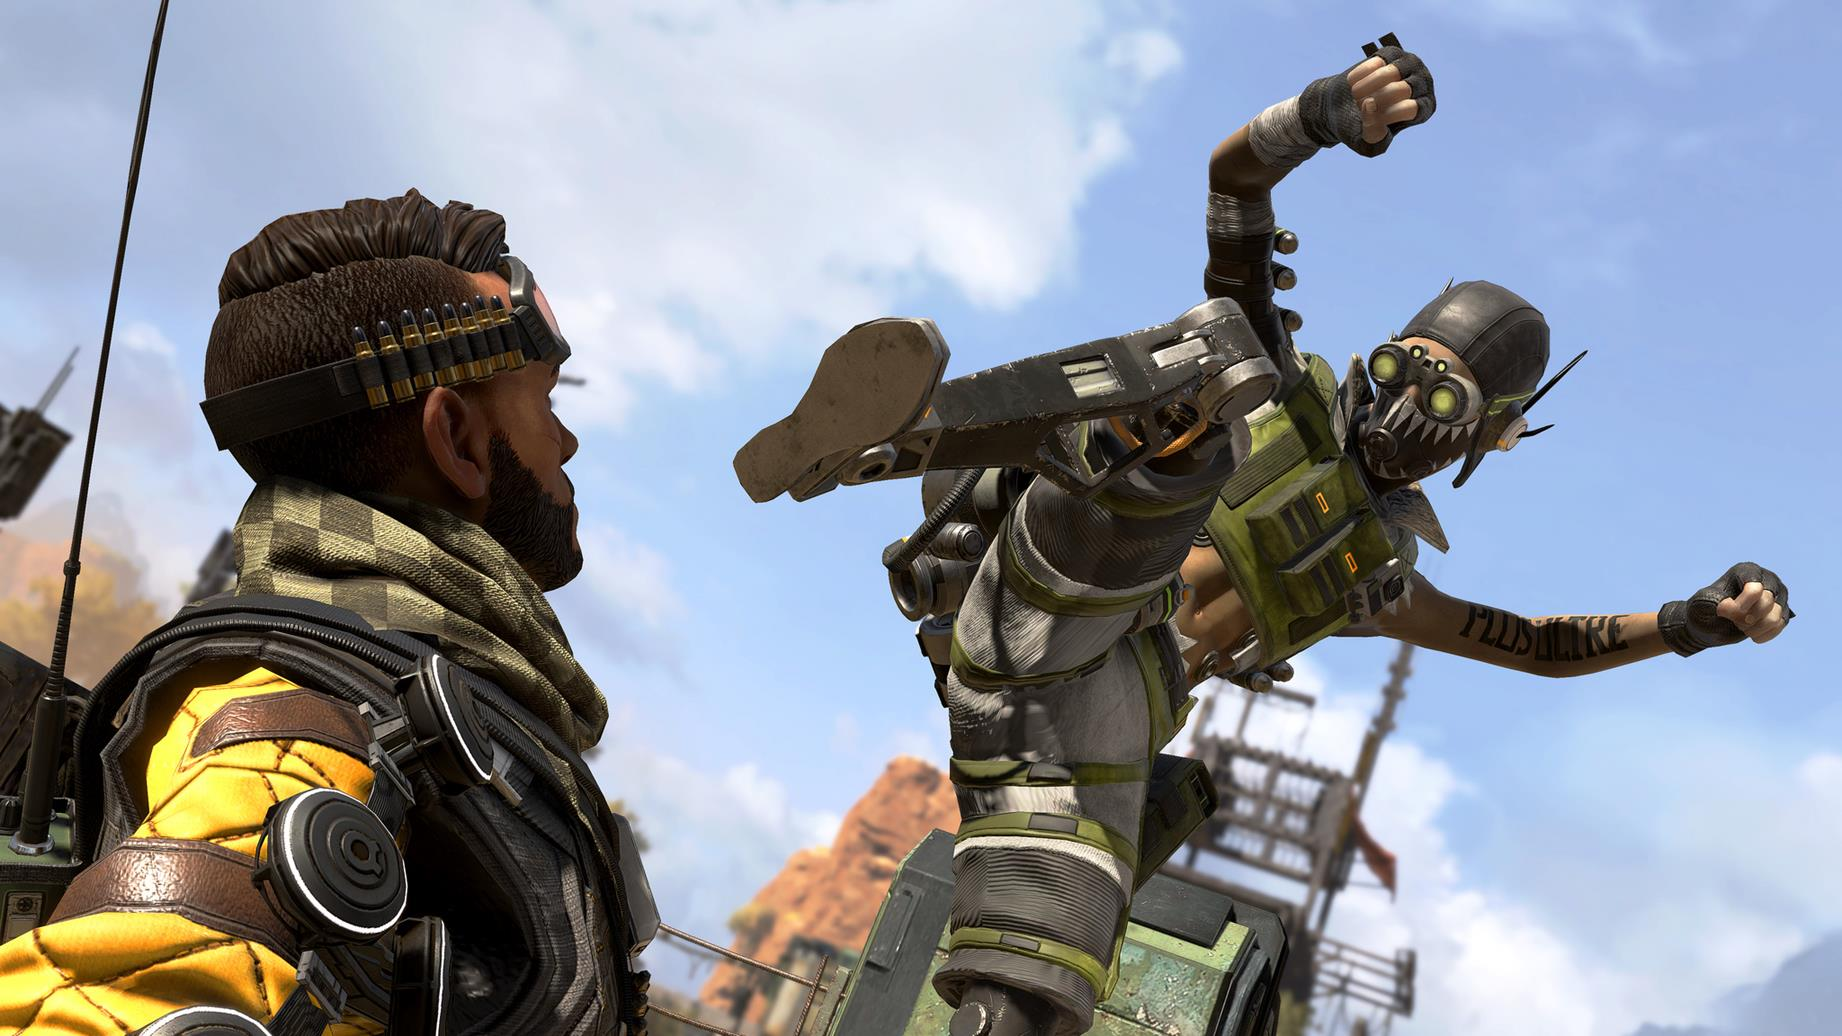 Apex Legends: 'piggyback' players who don't contribute will